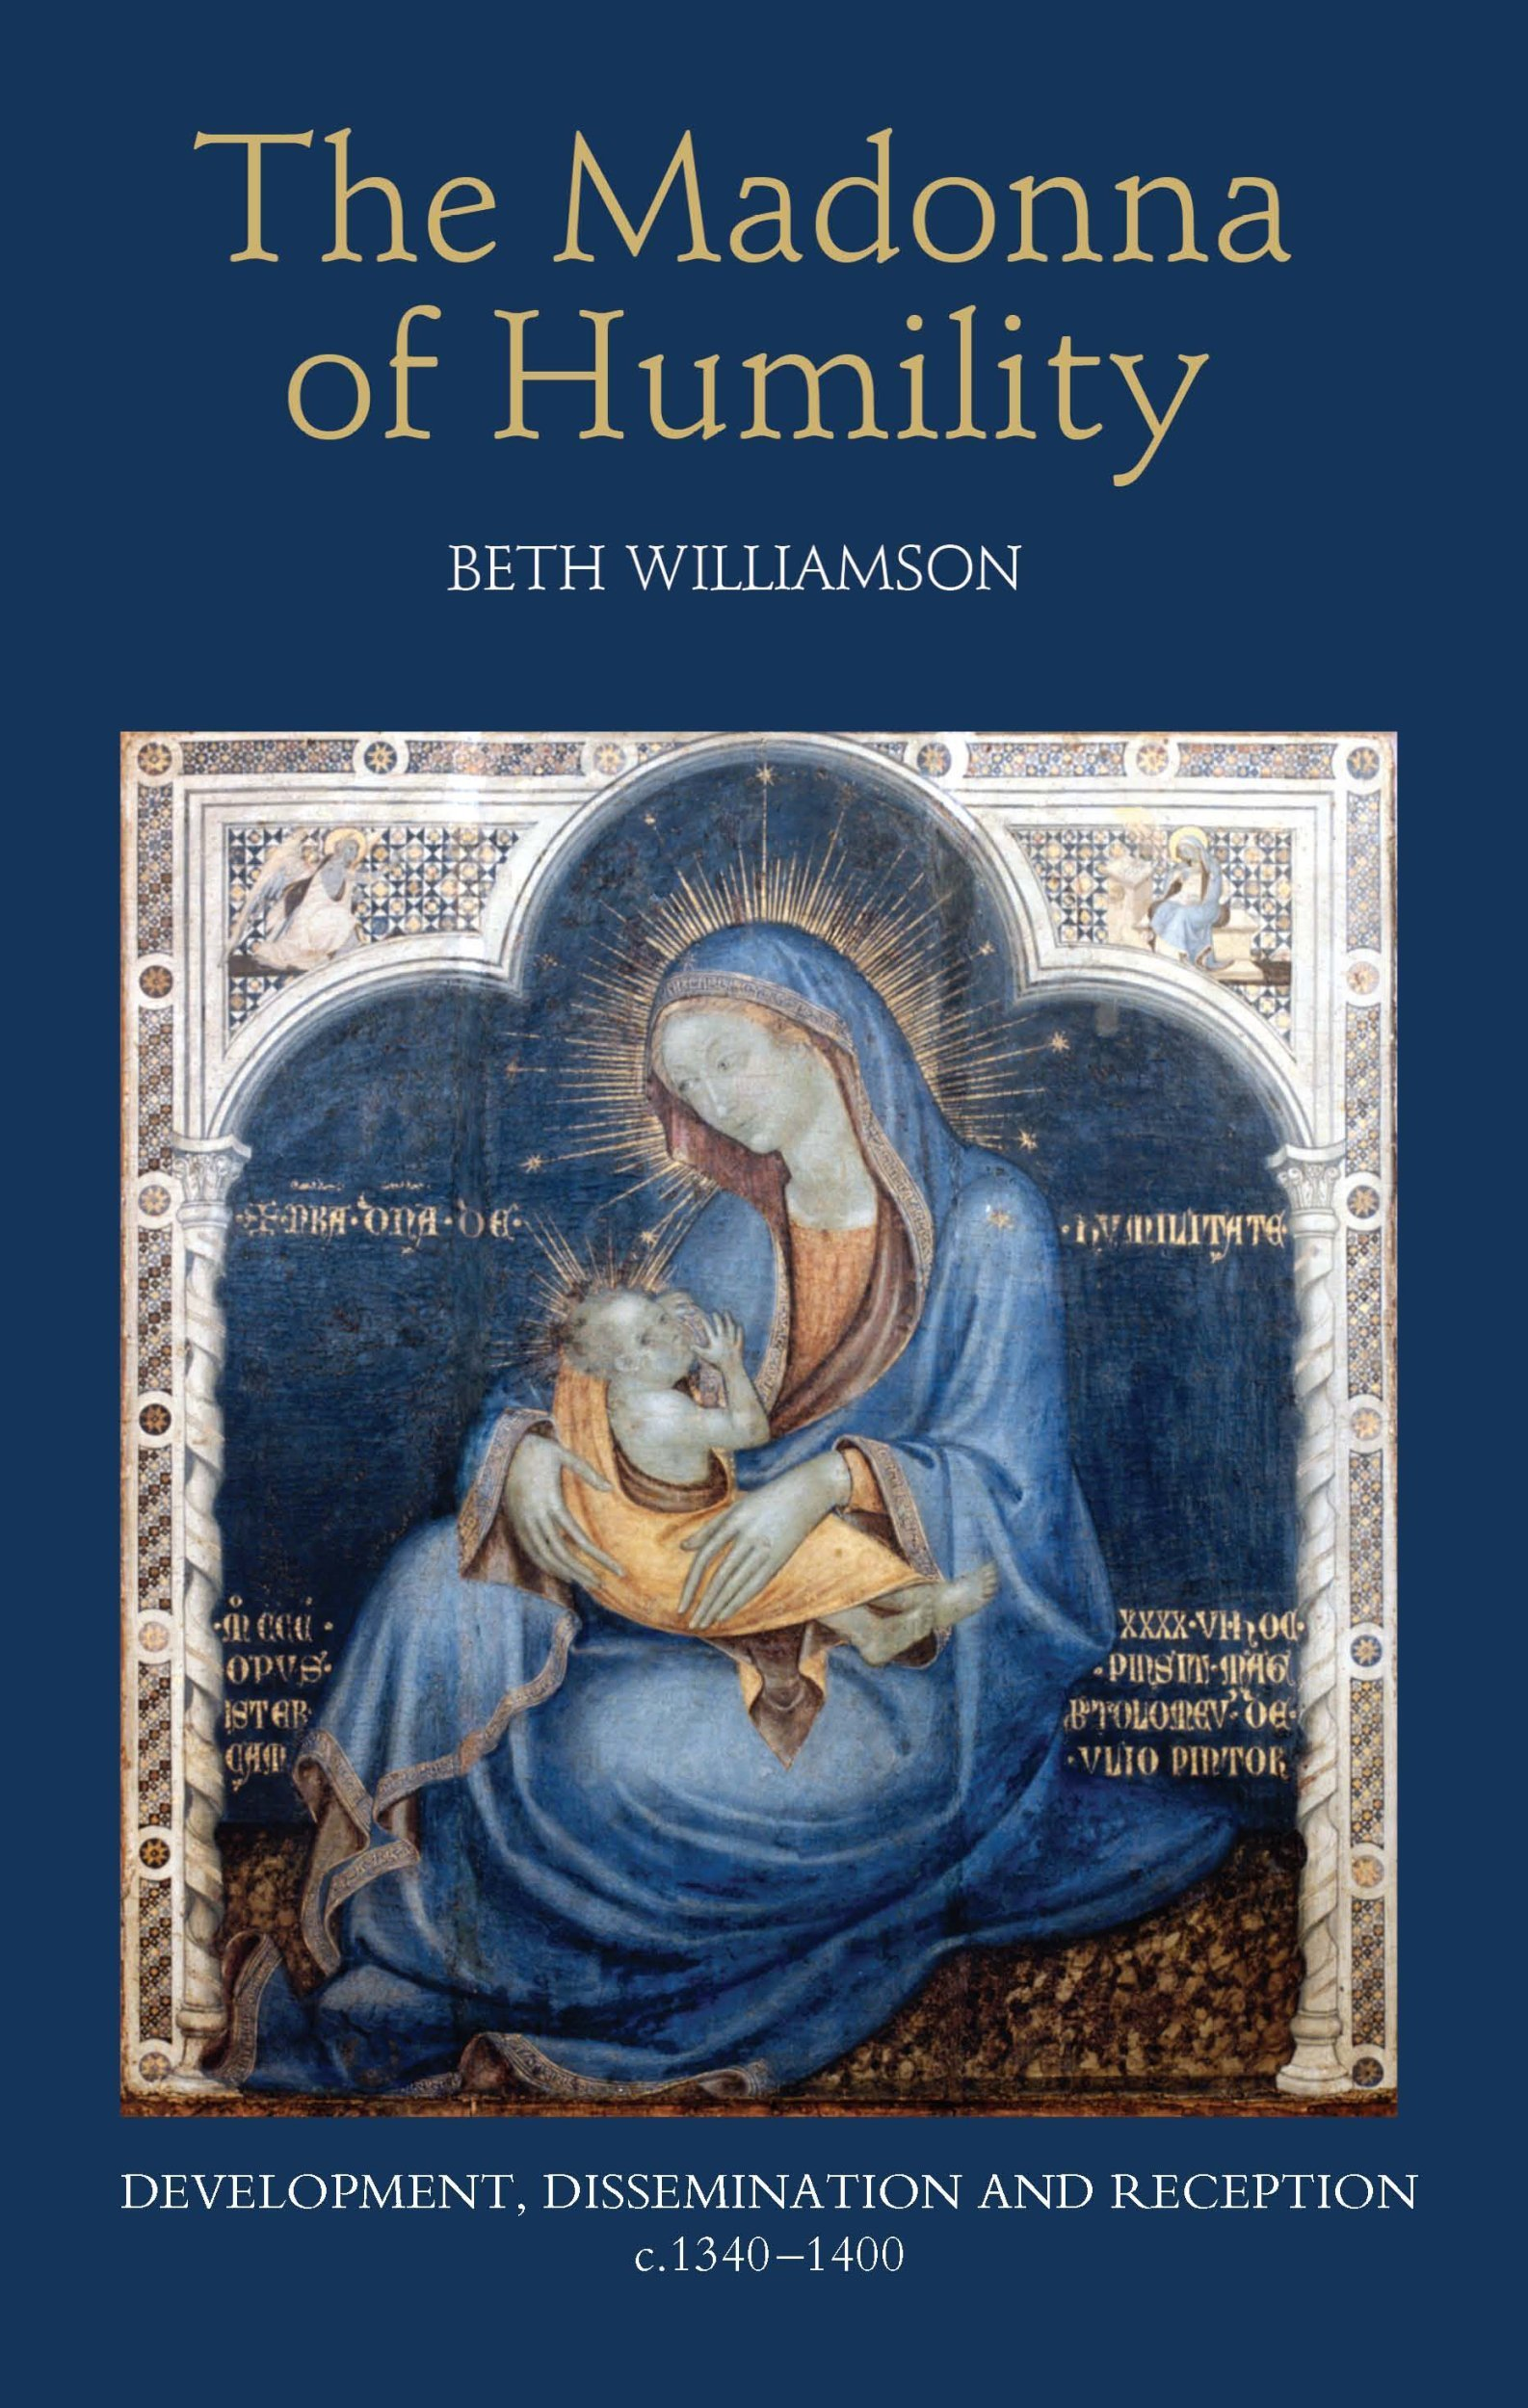 Download The Madonna of Humility: Development, Dissemination and Reception, c.1340-1400 (Bristol Studies in Medieval Cultures) pdf epub